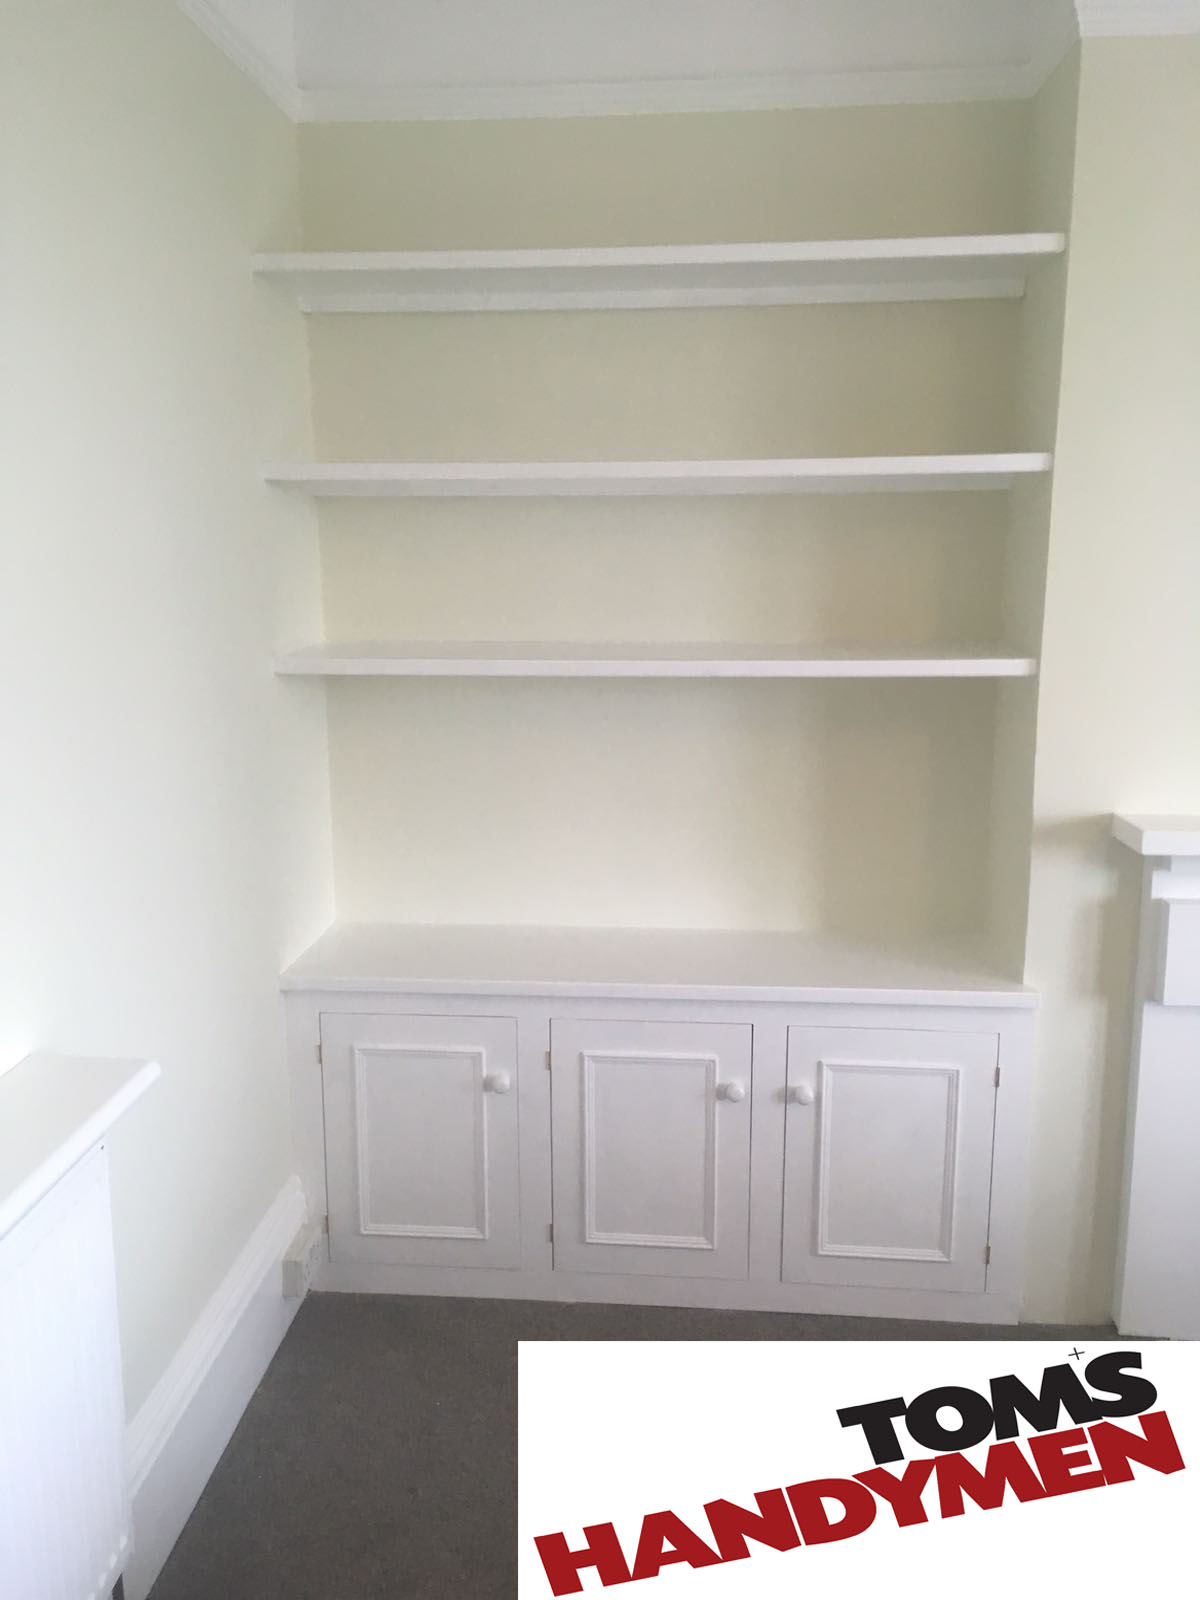 Tom's Handymen in Brighton offer fantastic carpentry solutions such as bespoke handmade furniture, decking, shopfitting and officefitting